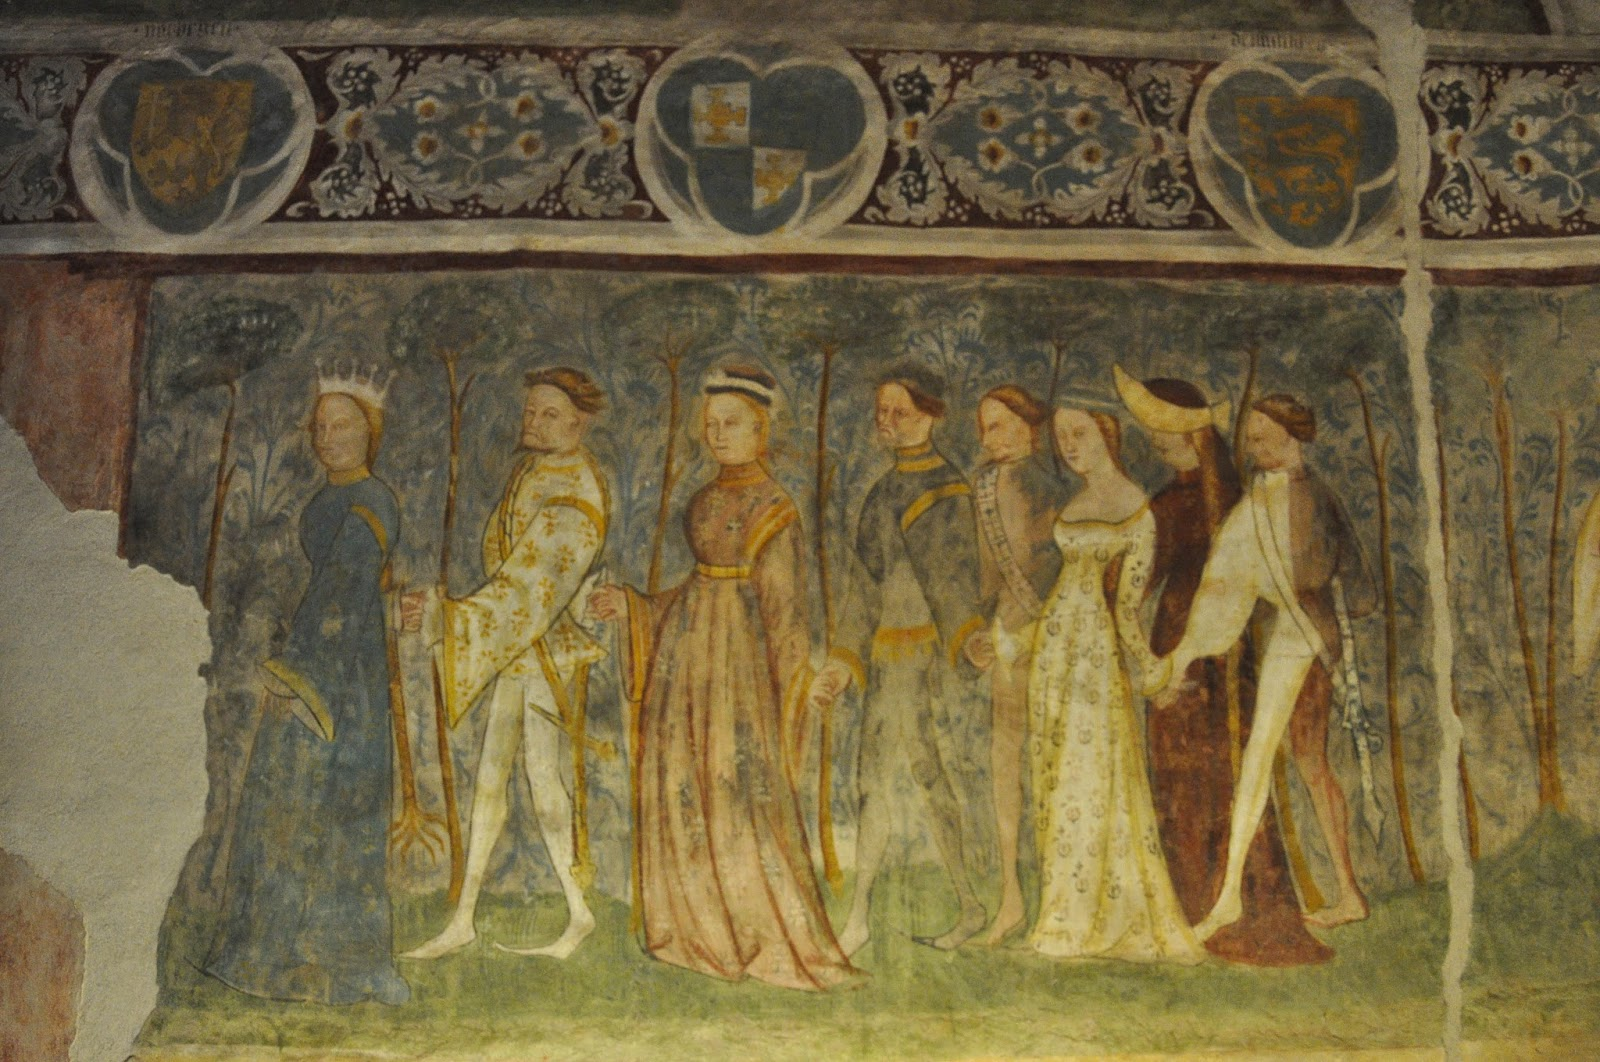 Fresco of procession with smiling ladies and sad lords